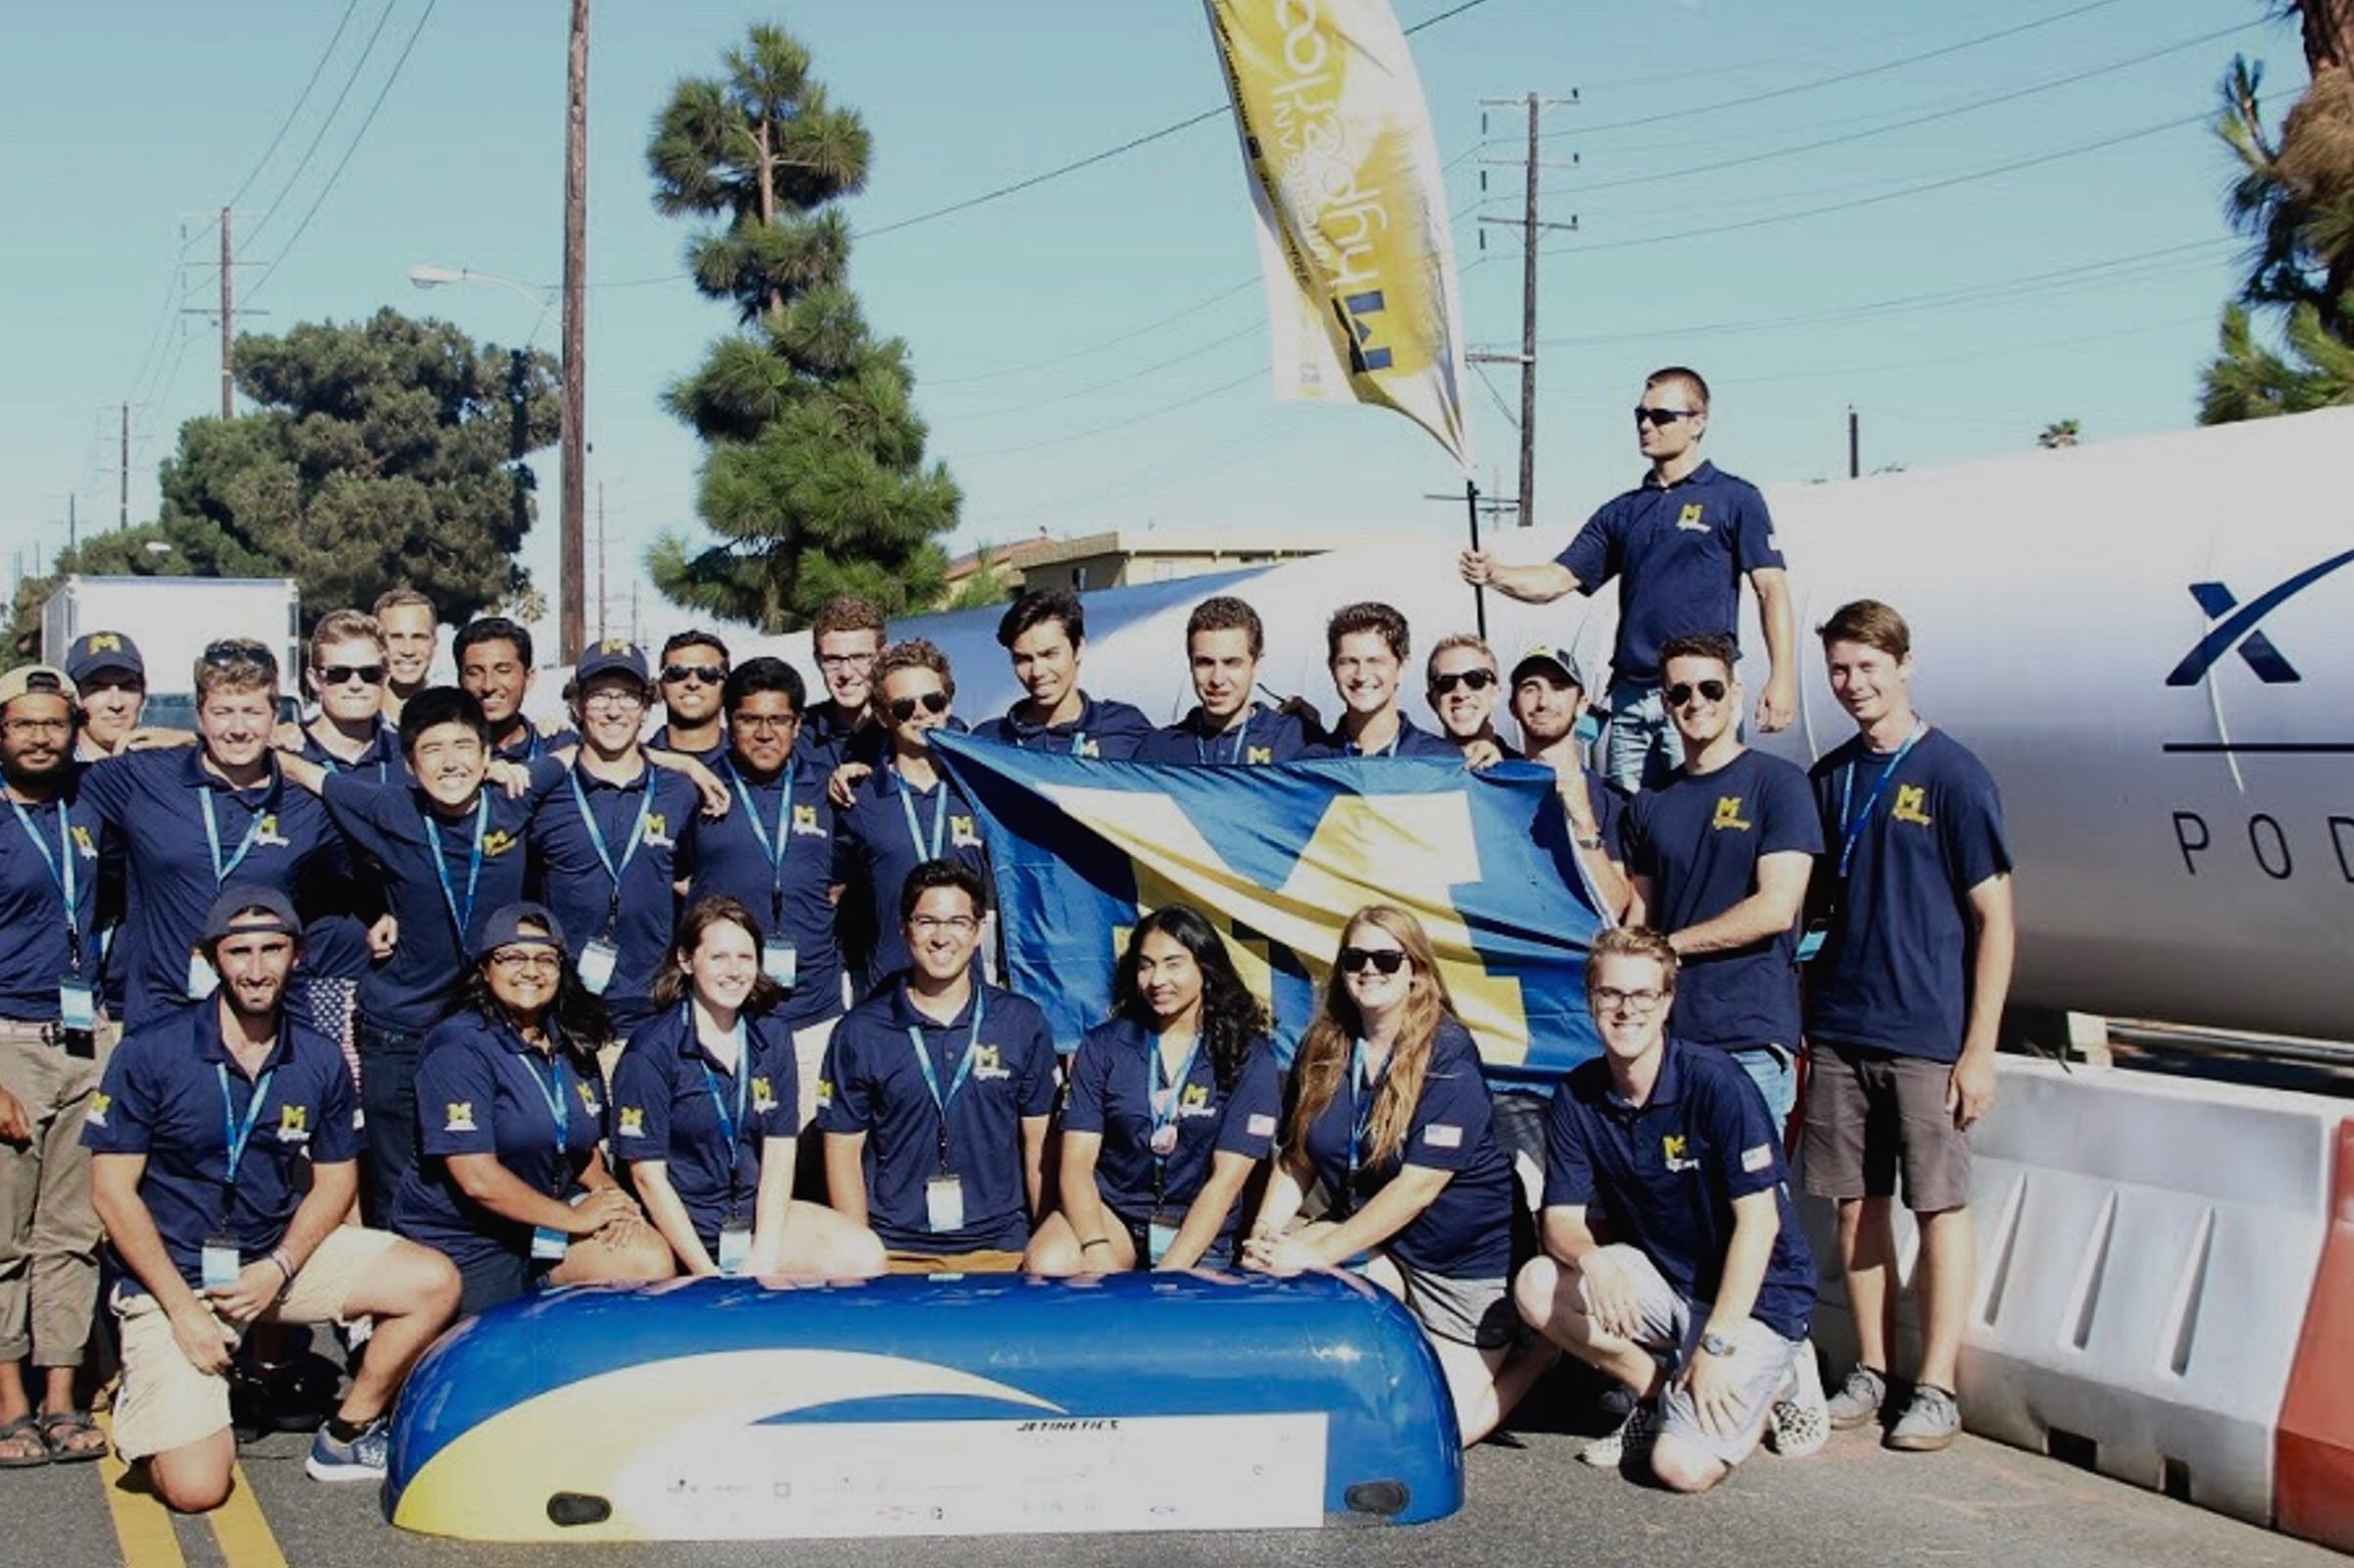 Michigan Hyperloop members compete at the annual competition in Hawthorne, CA.